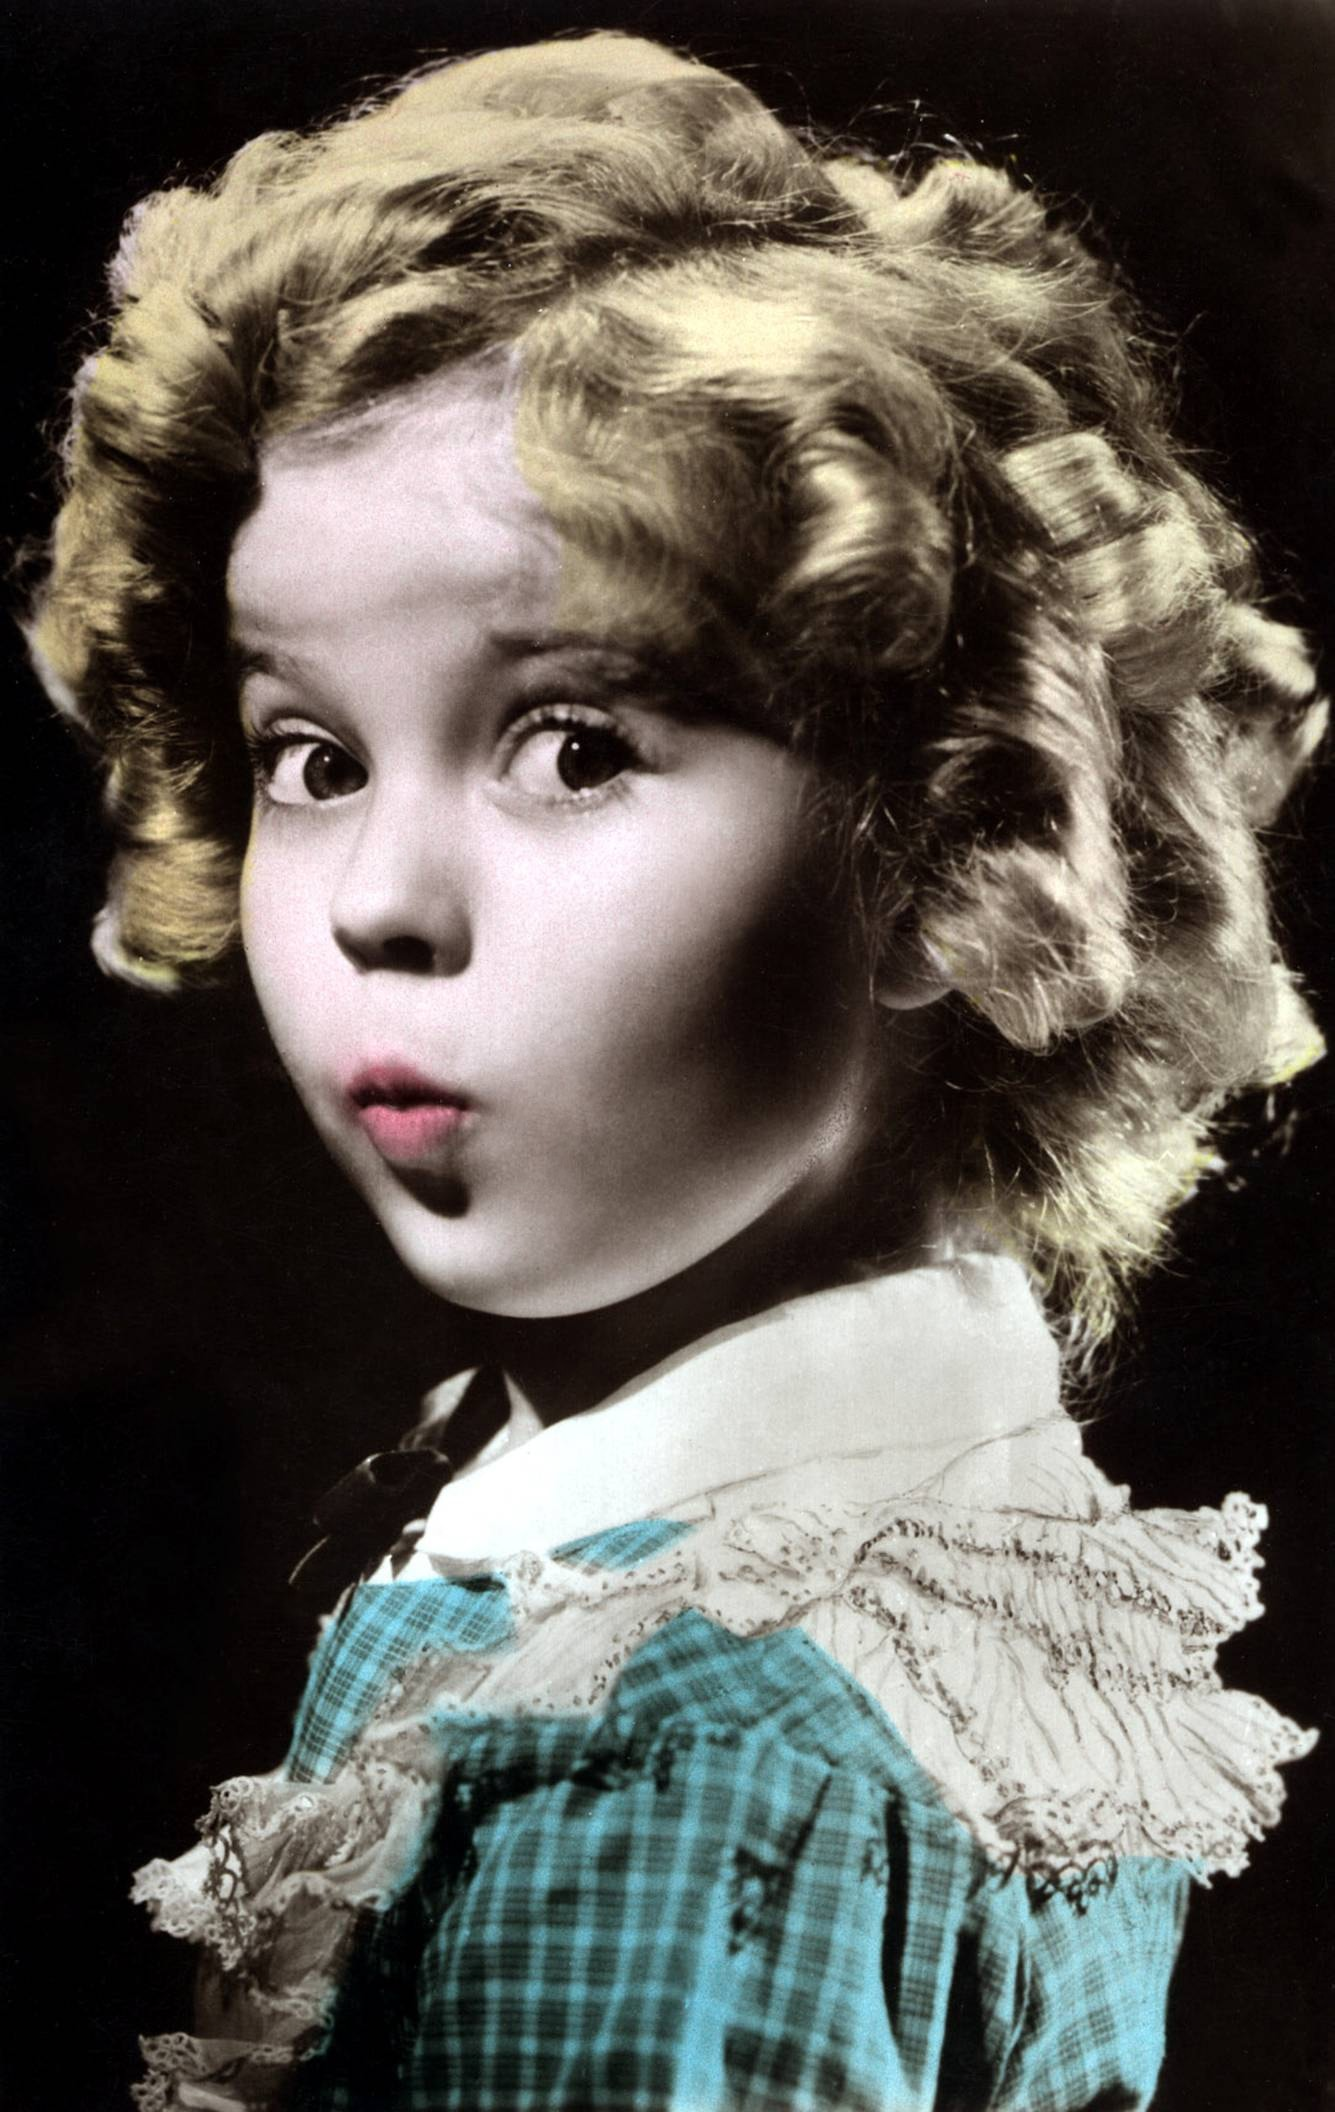 Shirley Temple HD Wallpapers | 7wallpapers net